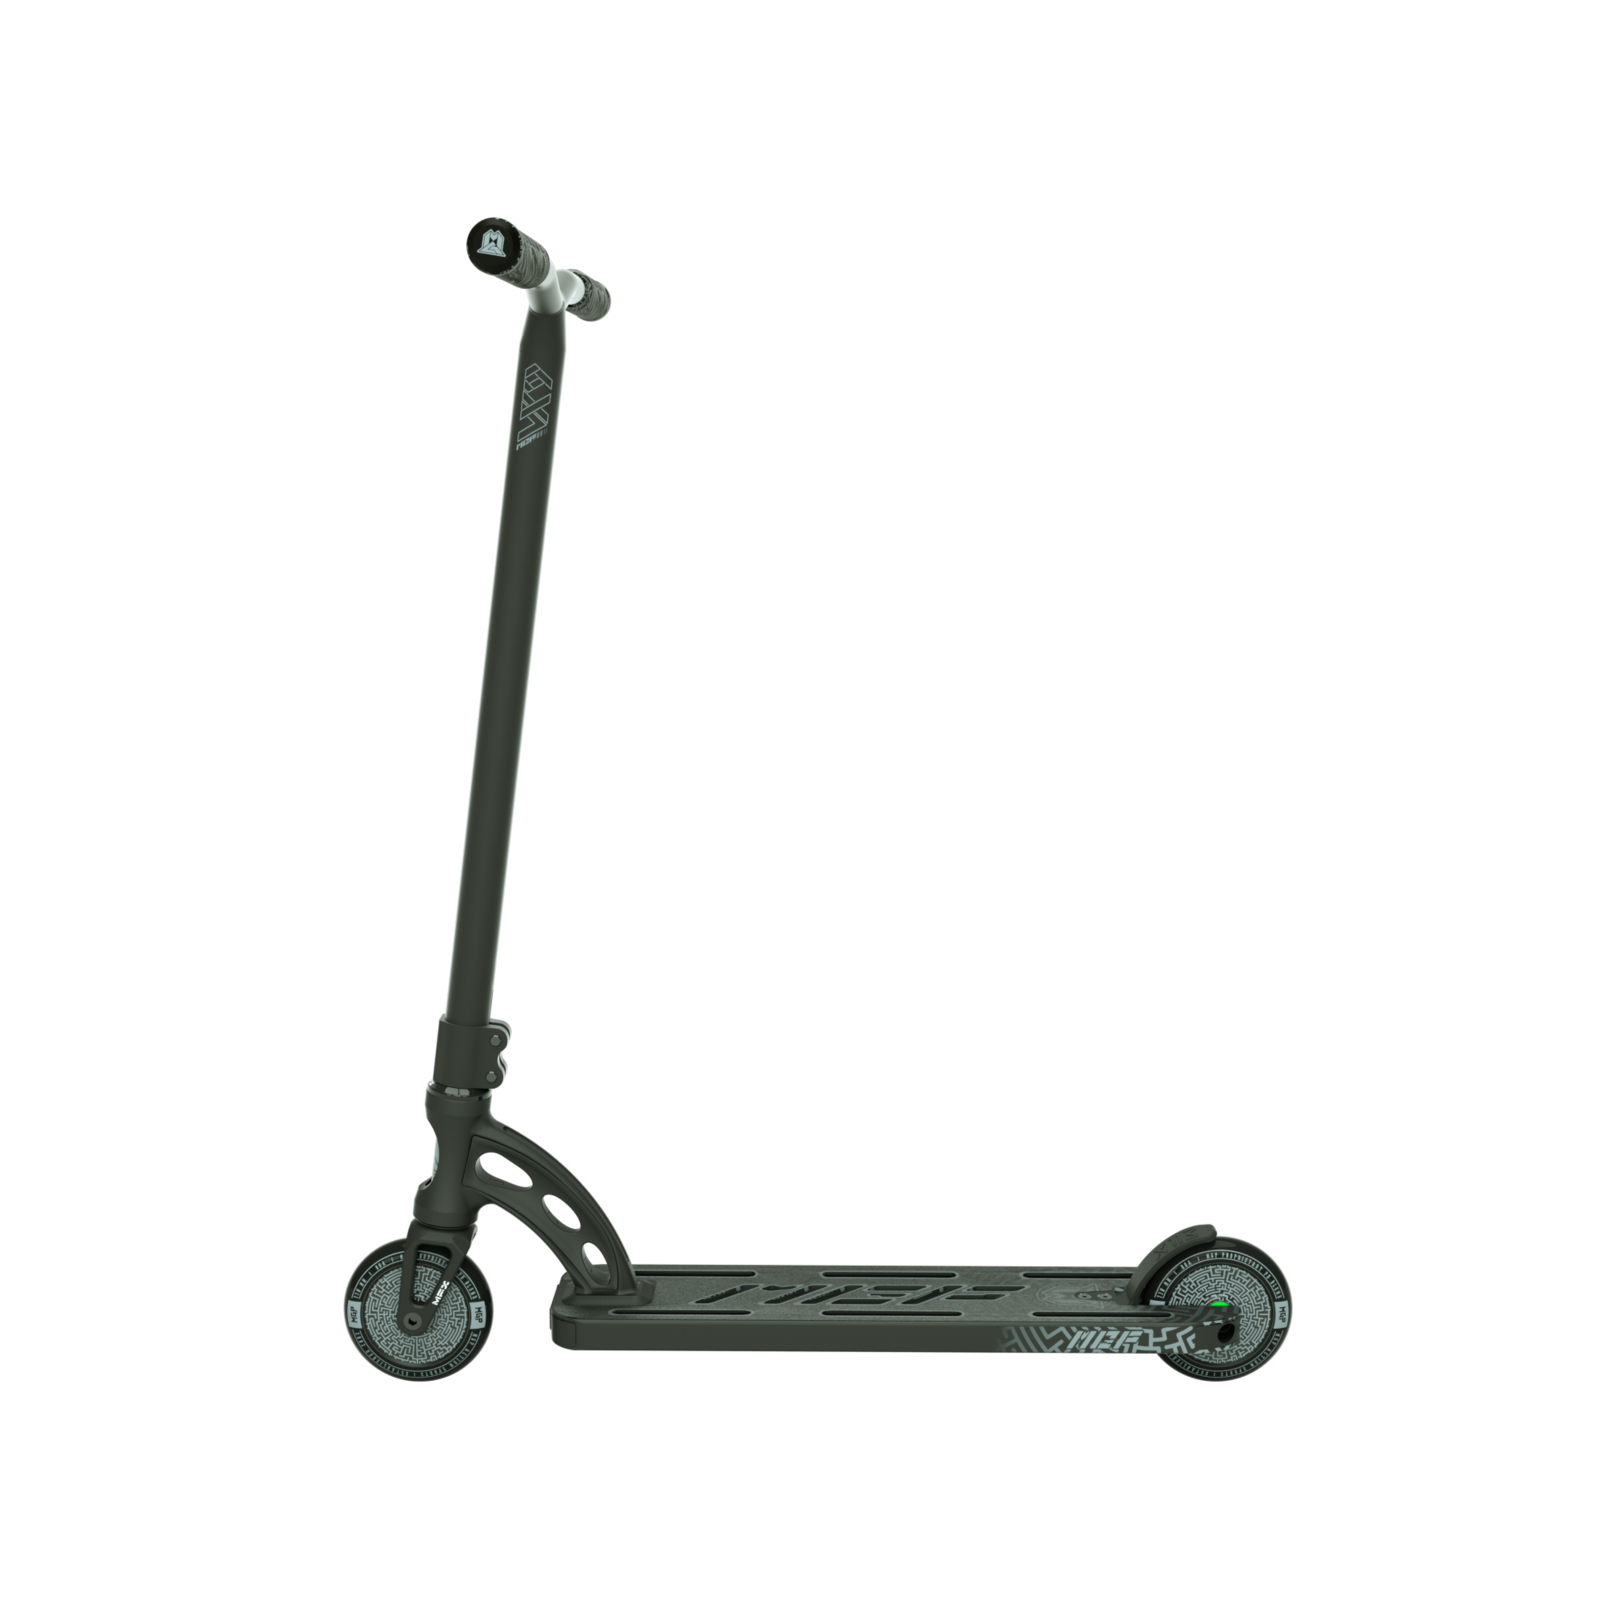 MADD Gear: VX9 Pro Scooter - Black image